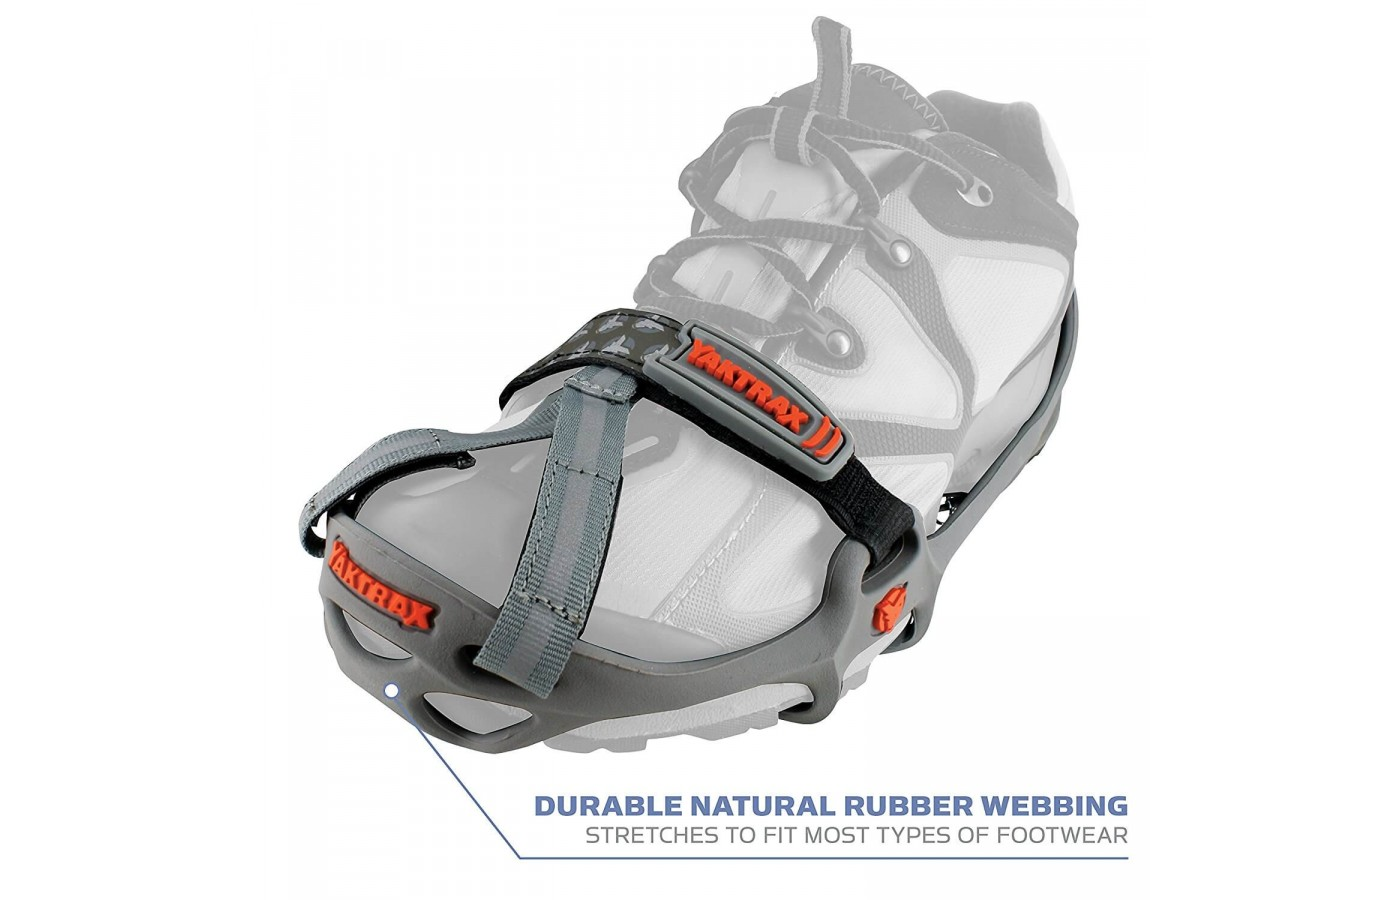 The Yaktrax Run fits snuggly over the shoe and works to keep the runner upright and safe